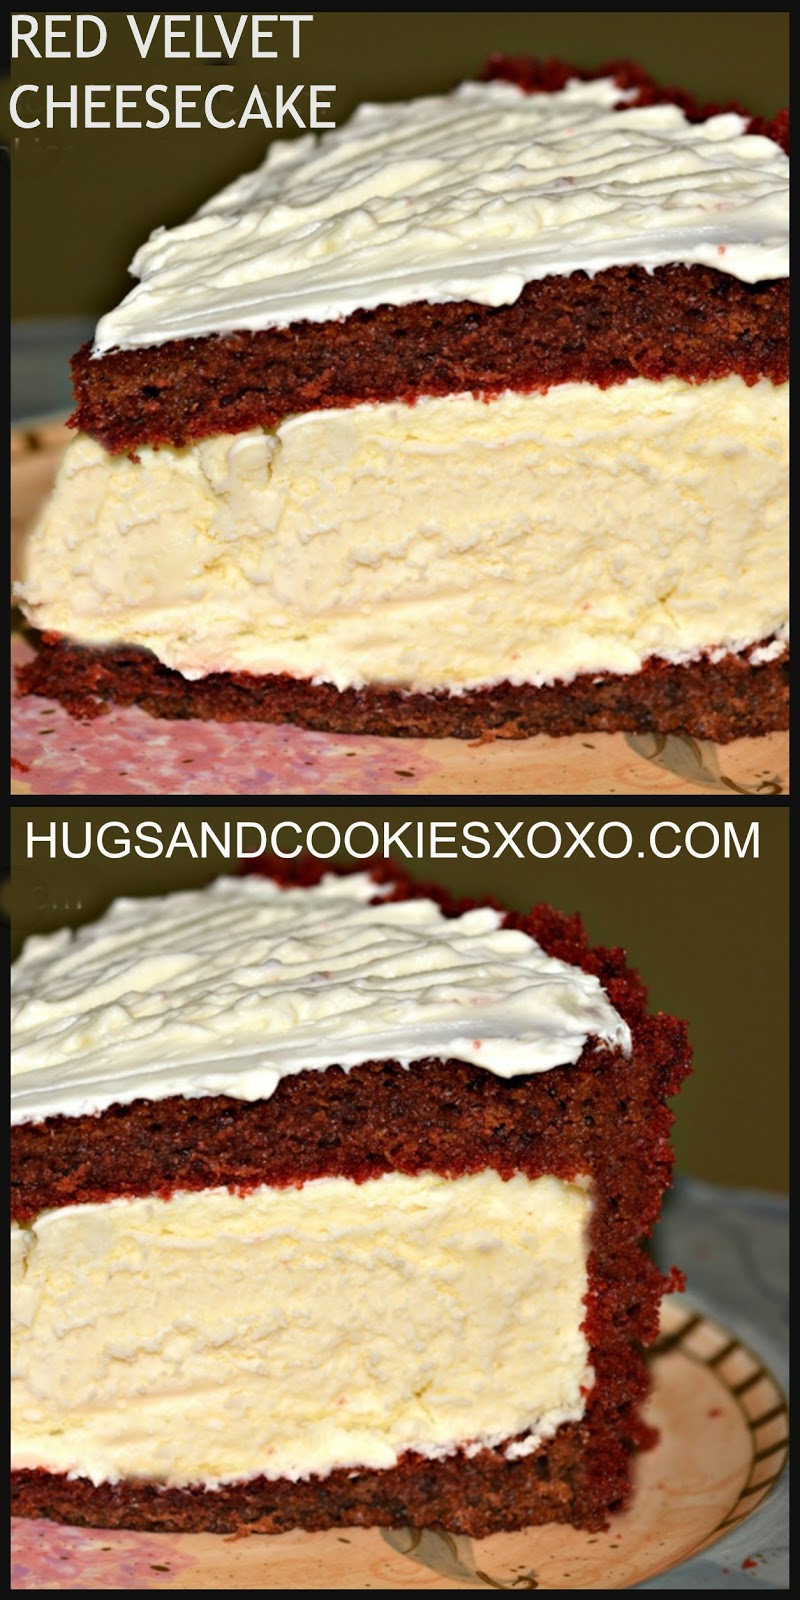 RED VELVET CHEESECAKE!!!! - Hugs and Cookies XOXO